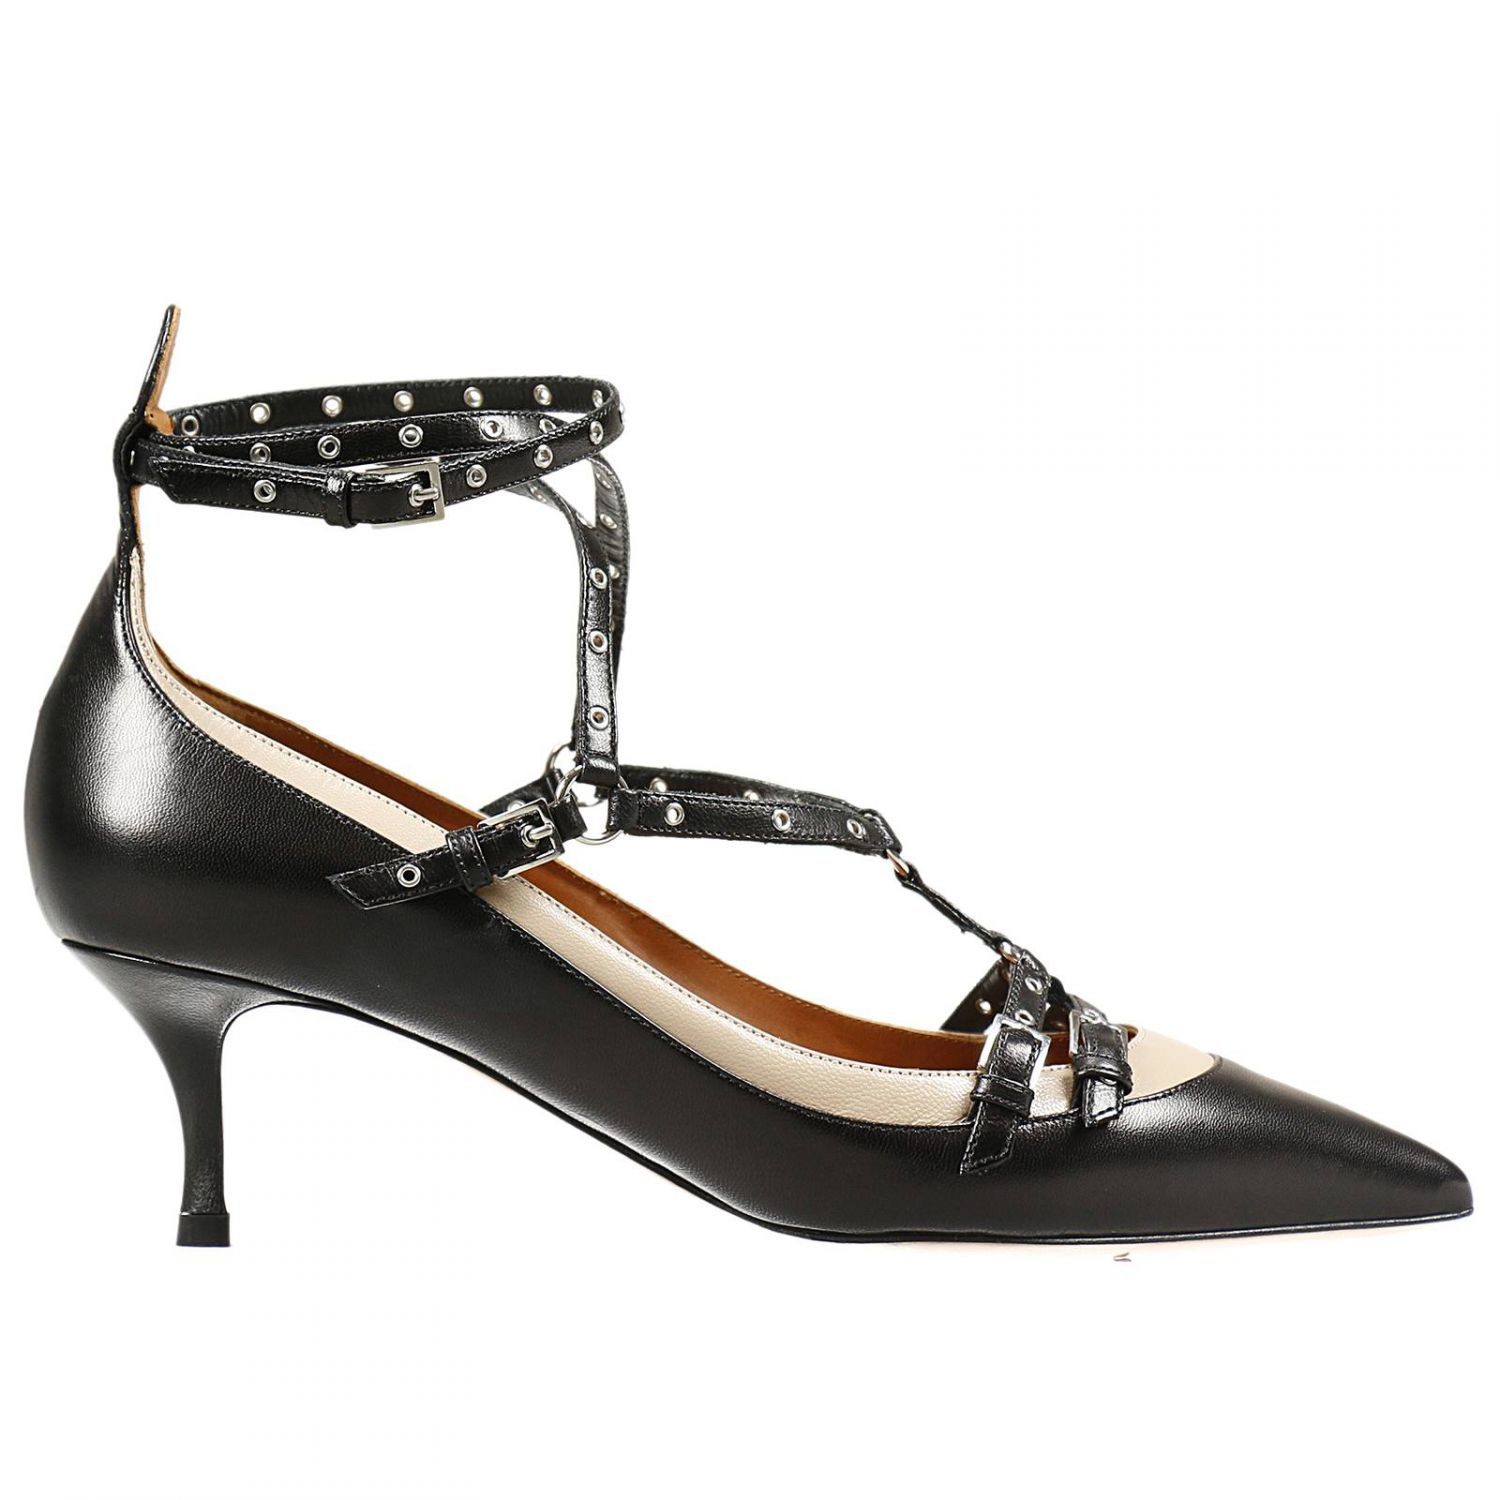 Lyst - Valentino Heels Woman in Black